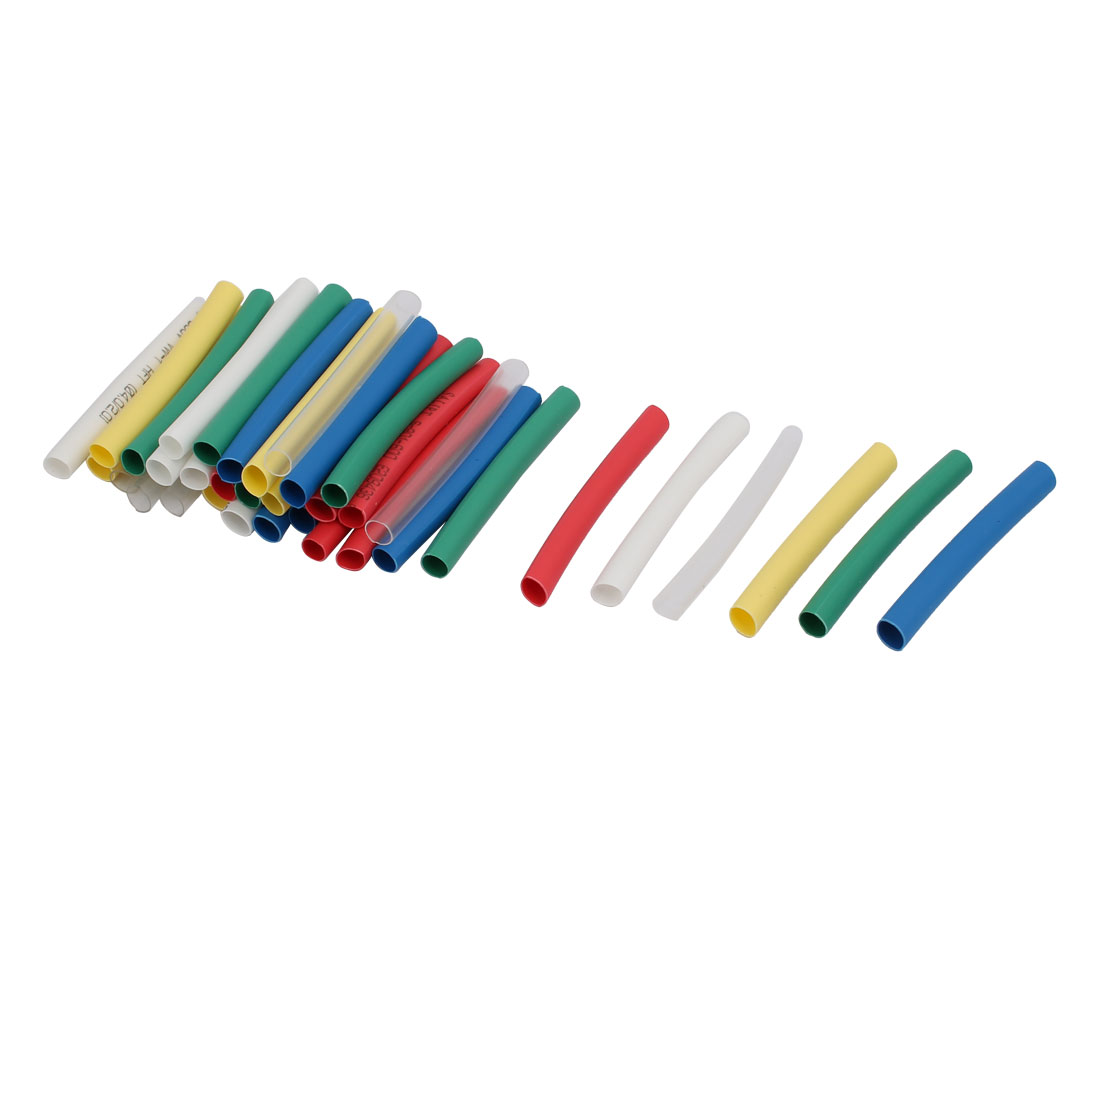 4mmx45mm Multi-Colors Insulated Heat Shrink Tube Sleeving Wrap Wire Kits 42pcs